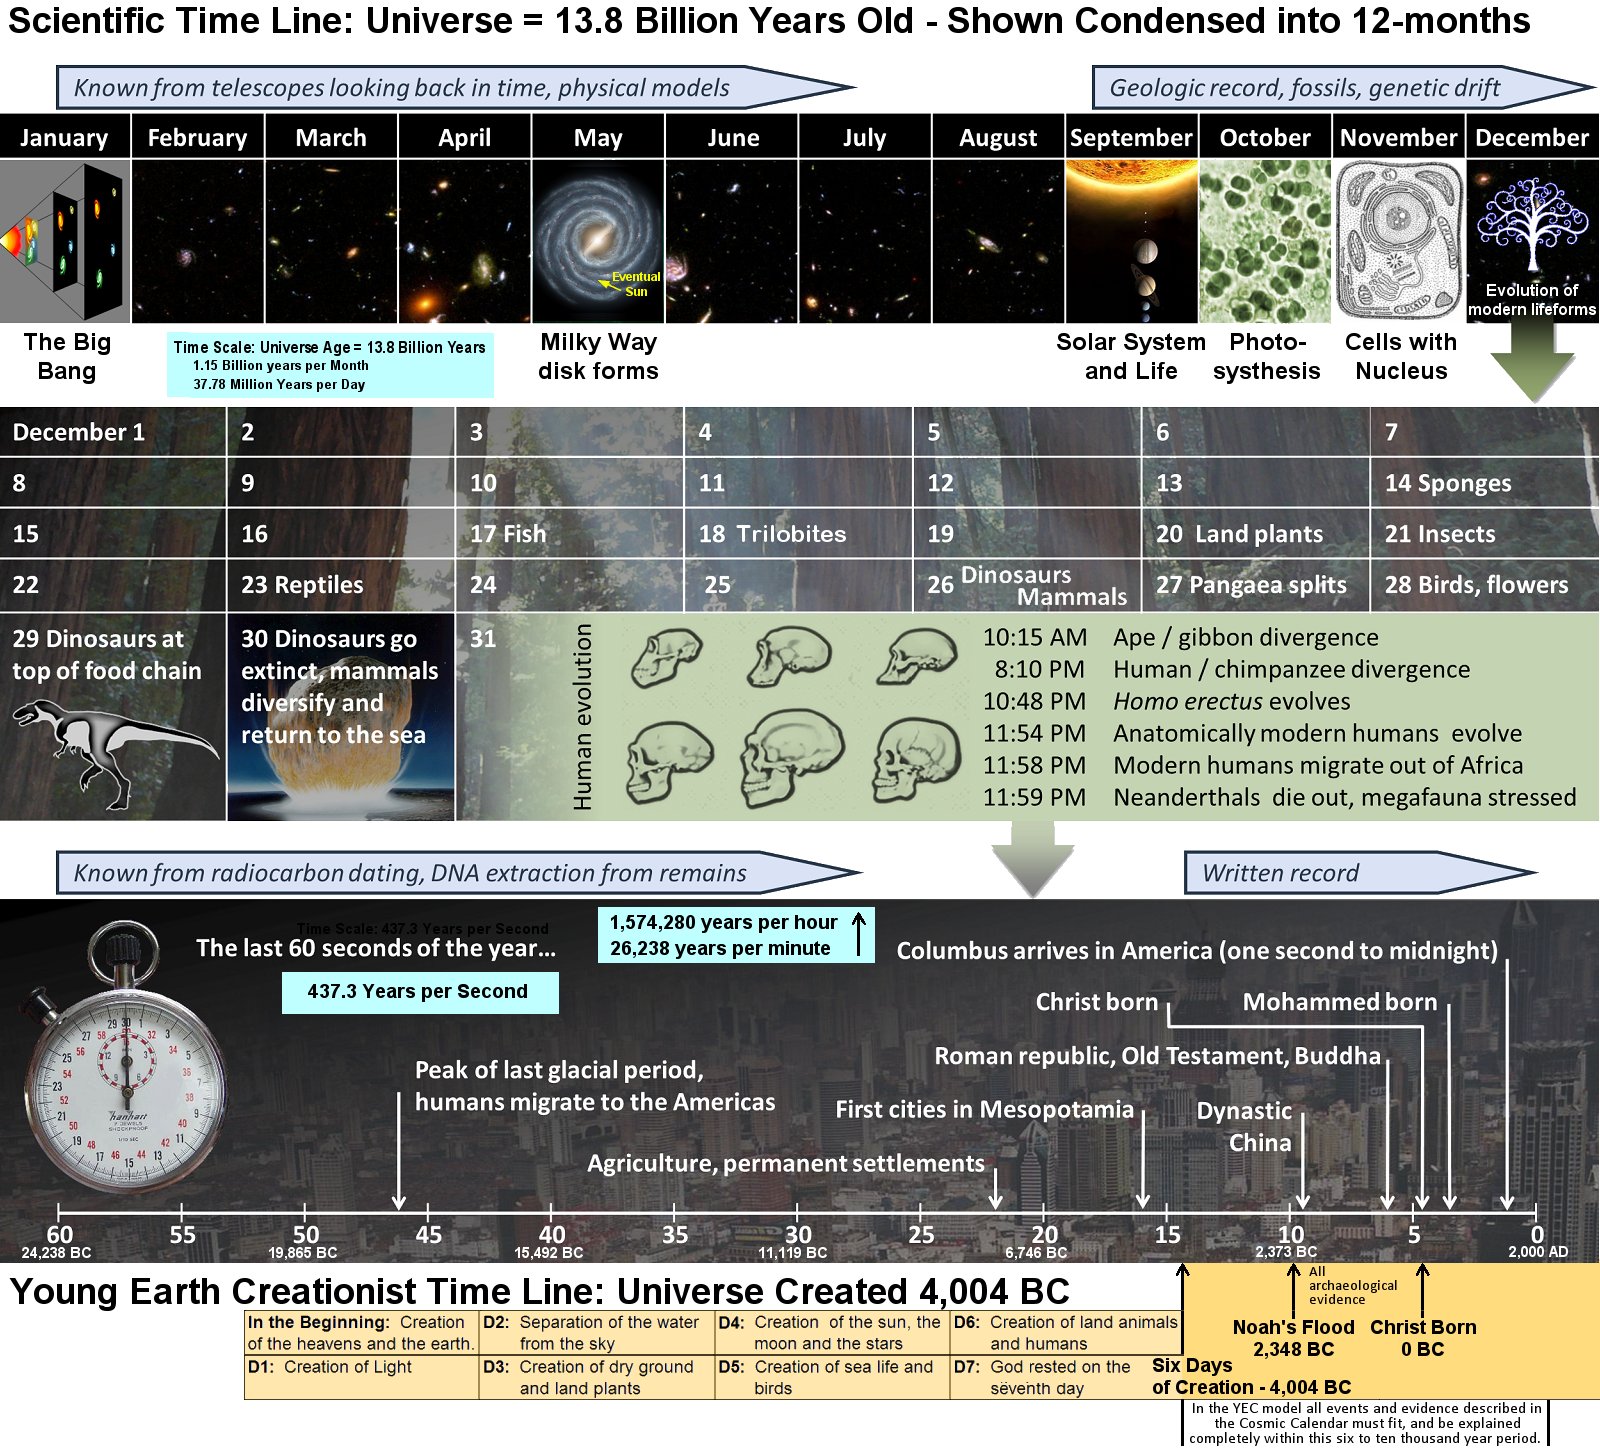 Cosmic Calendar.Cosmic Calendar And Creationist Timeline